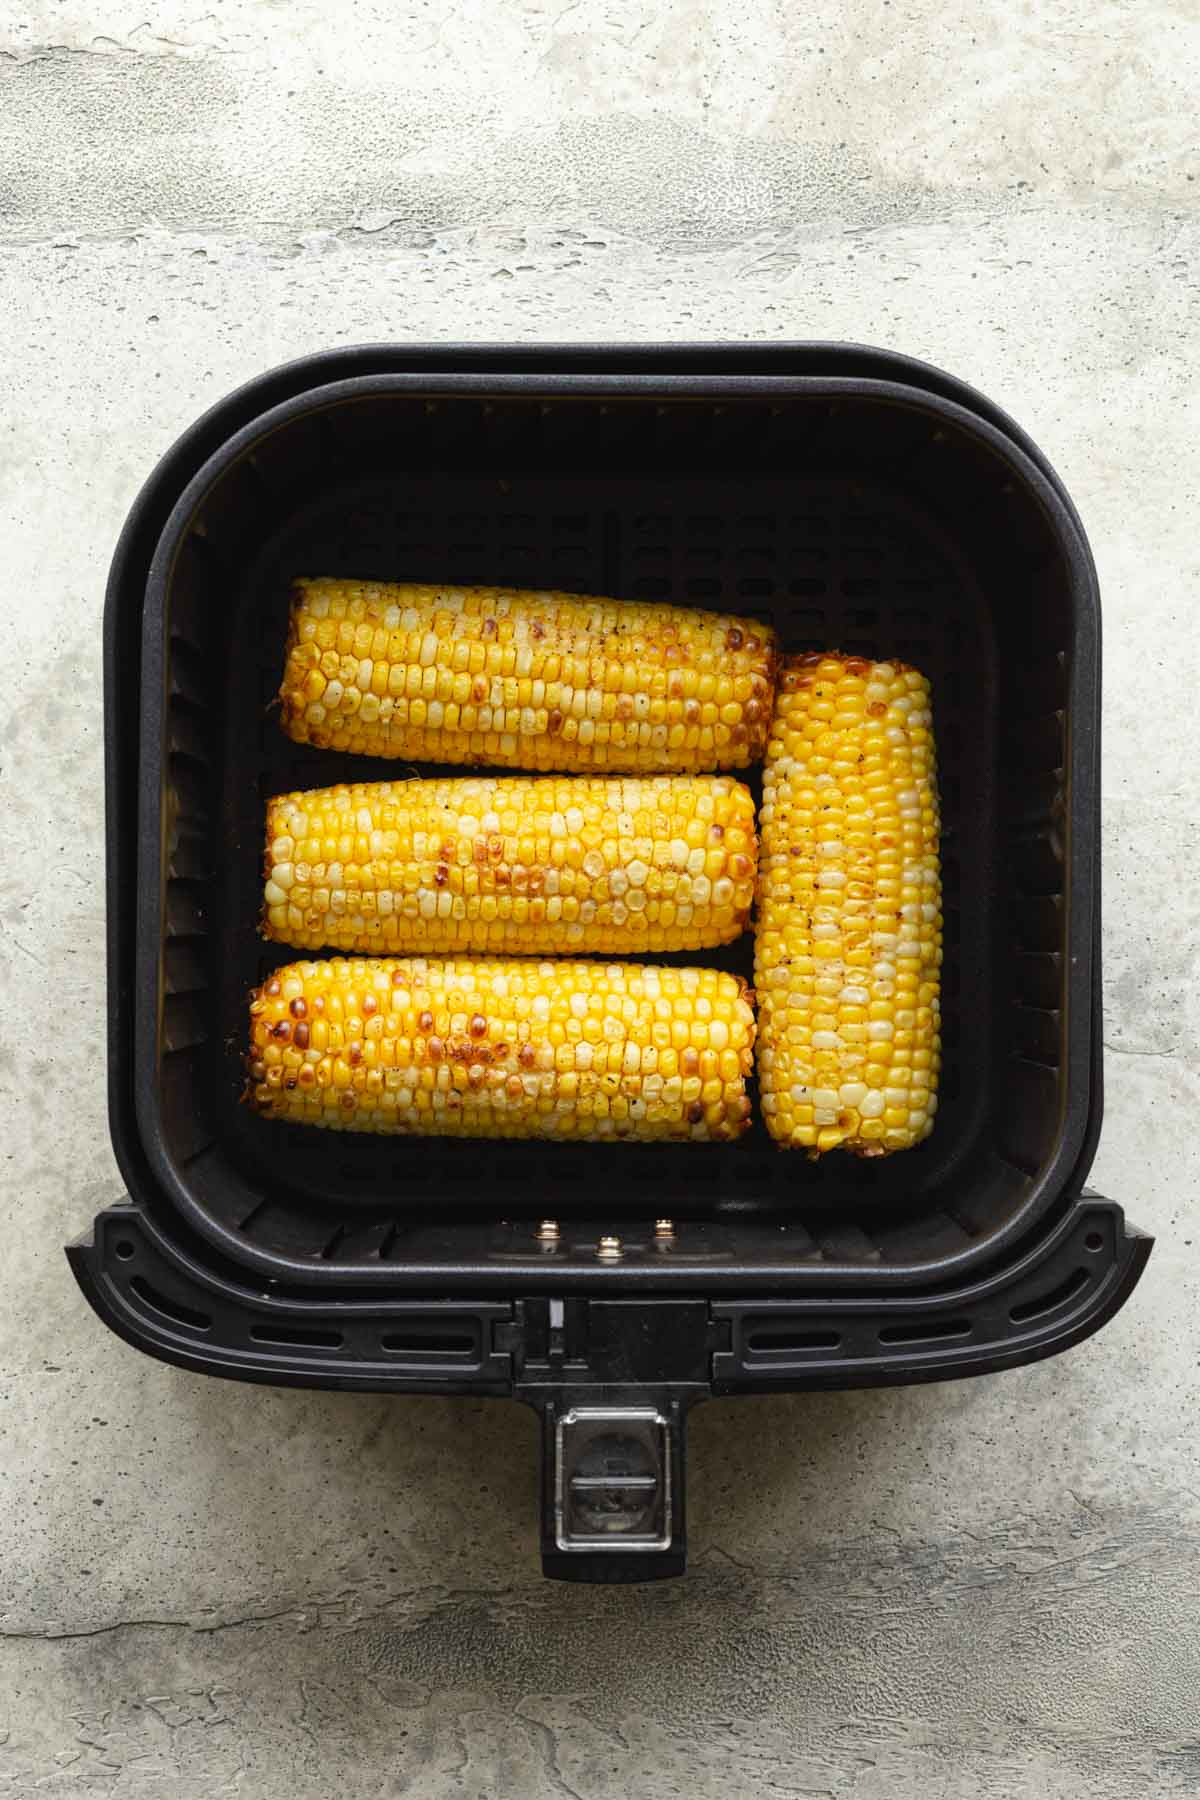 Four ears of fully cooked corn in an air fryer basket.